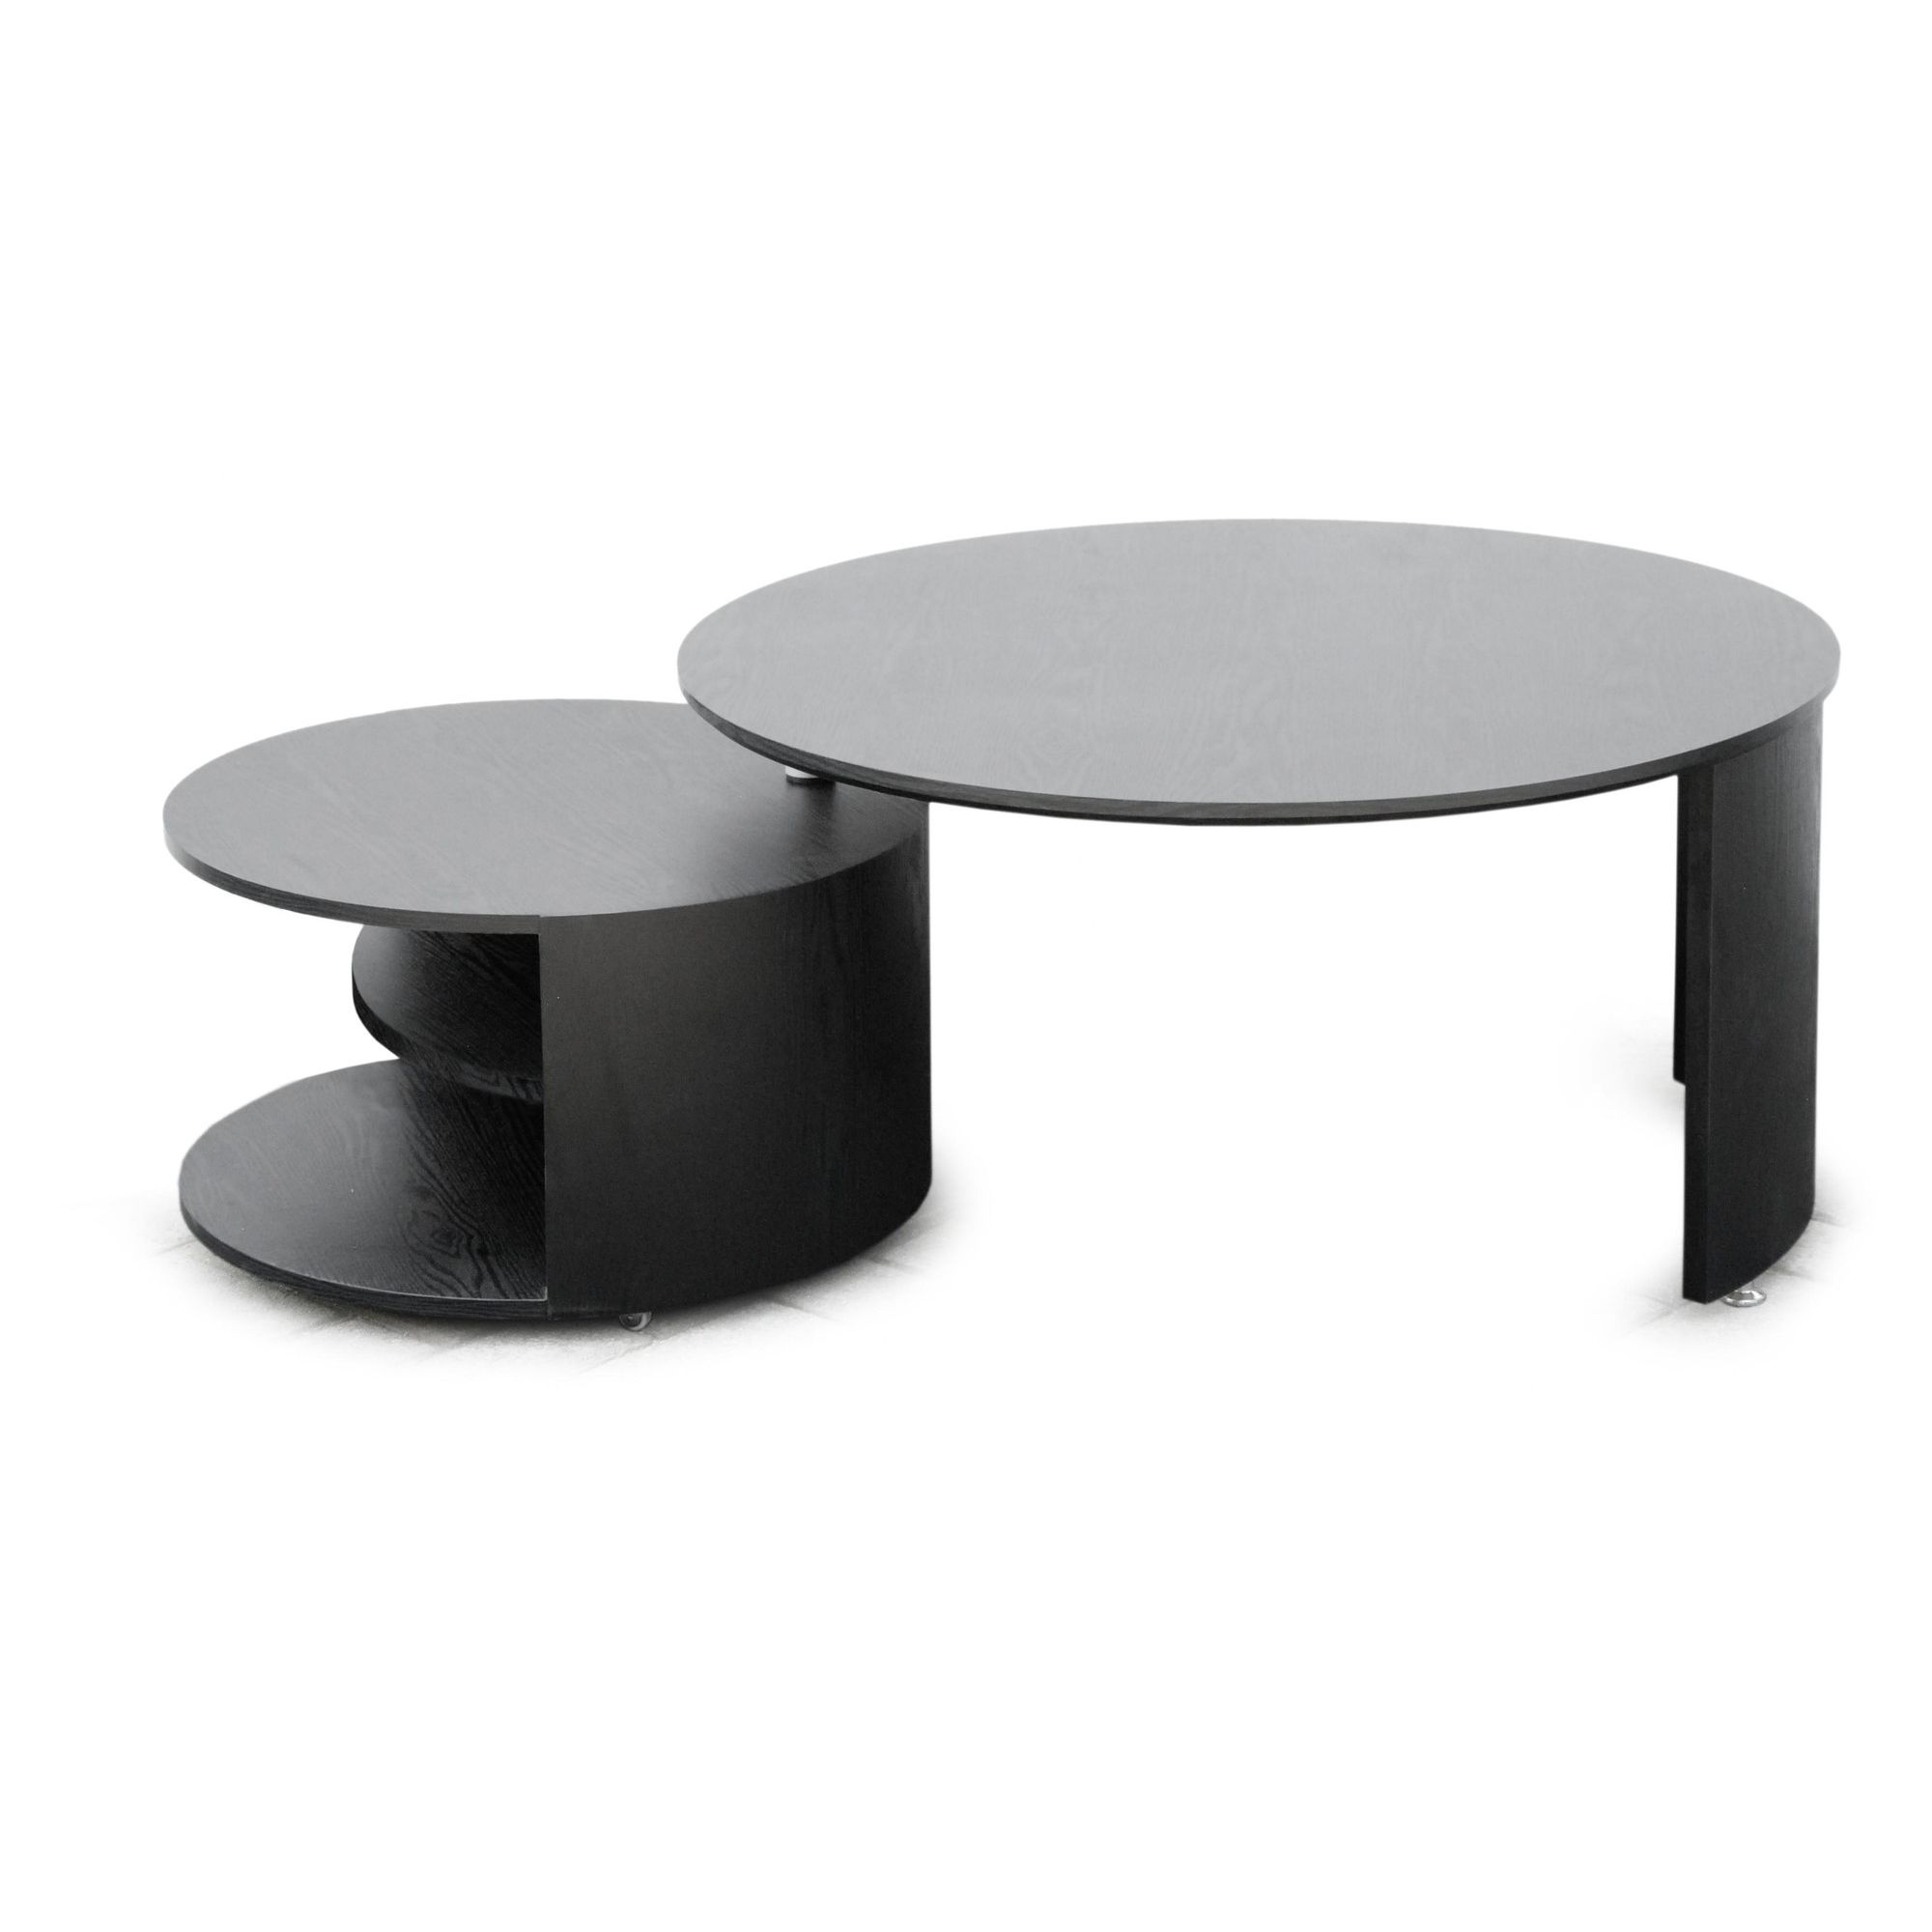 RGE Katrin Coffee Table - Lacquer Black at Tesco Direct